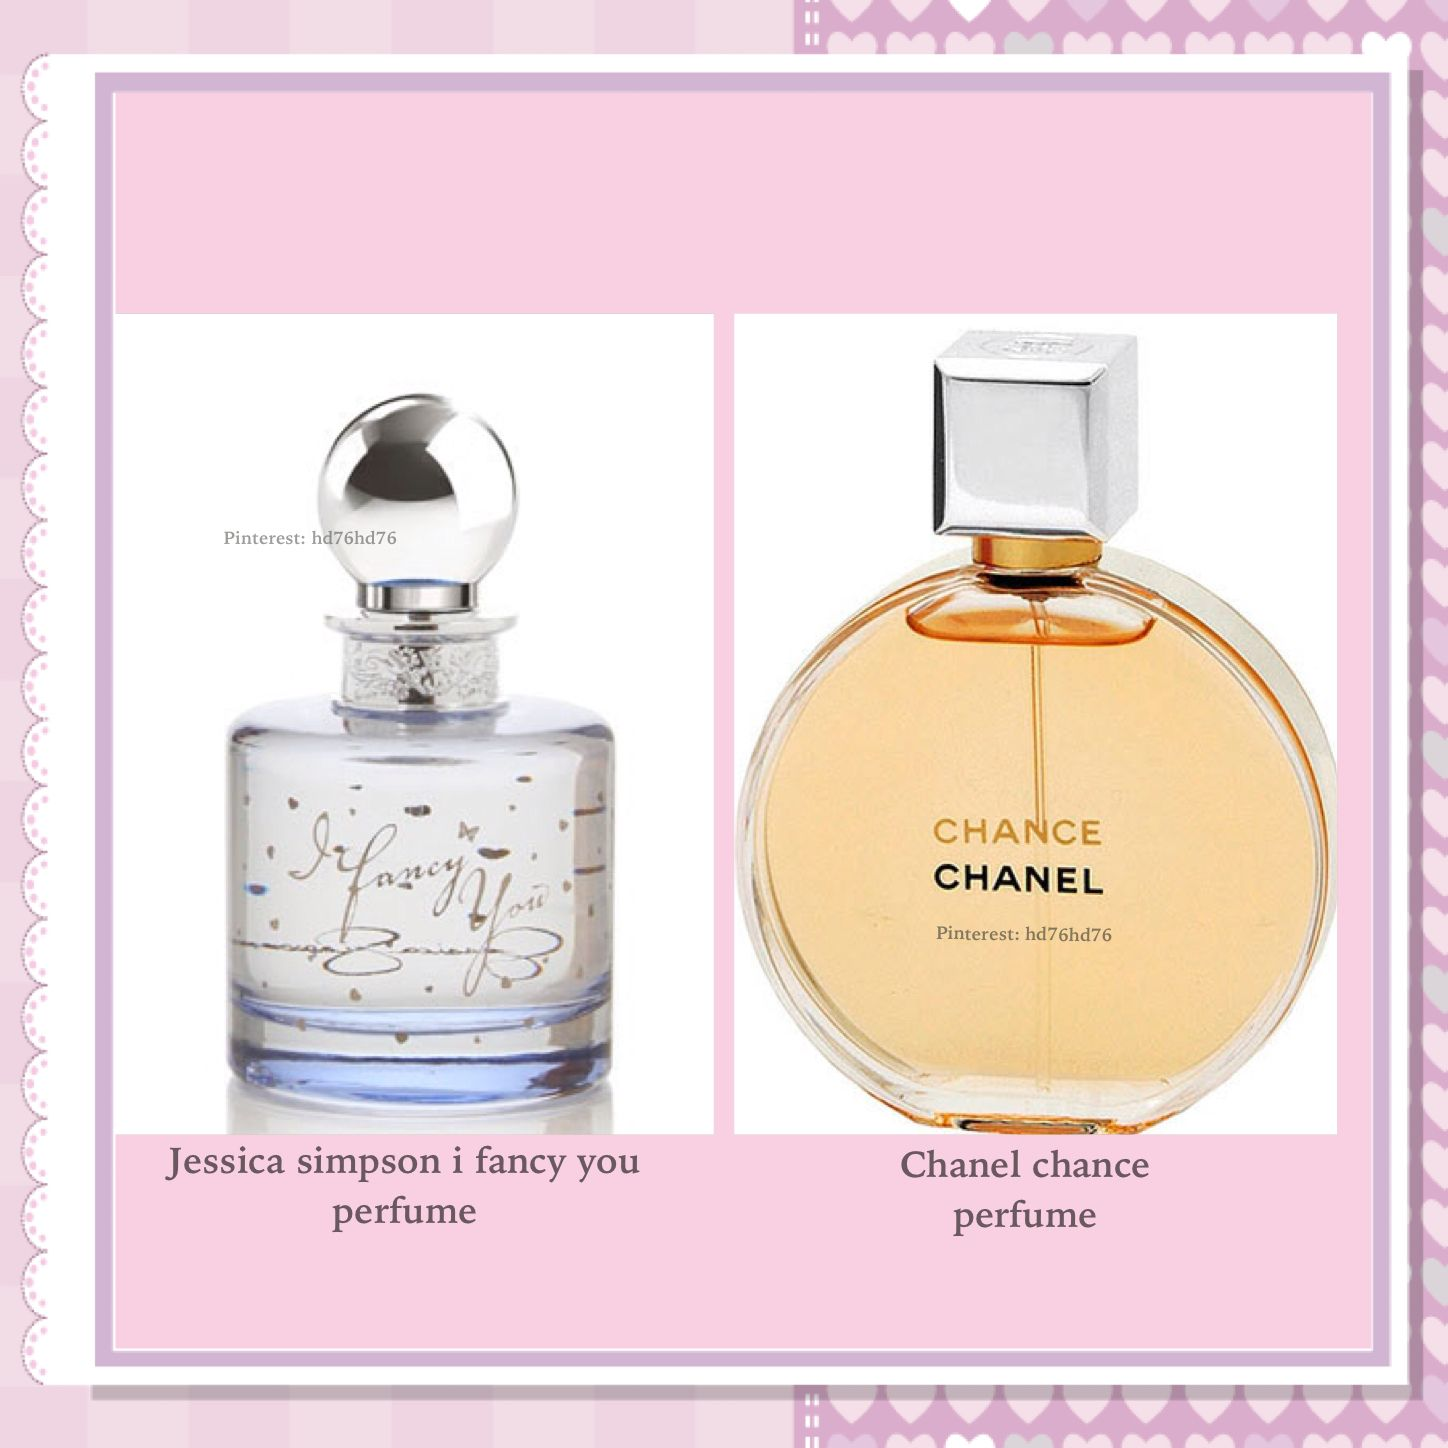 Jessica Simpson I Fancy You Perfume Is Similar To Chanel Chance